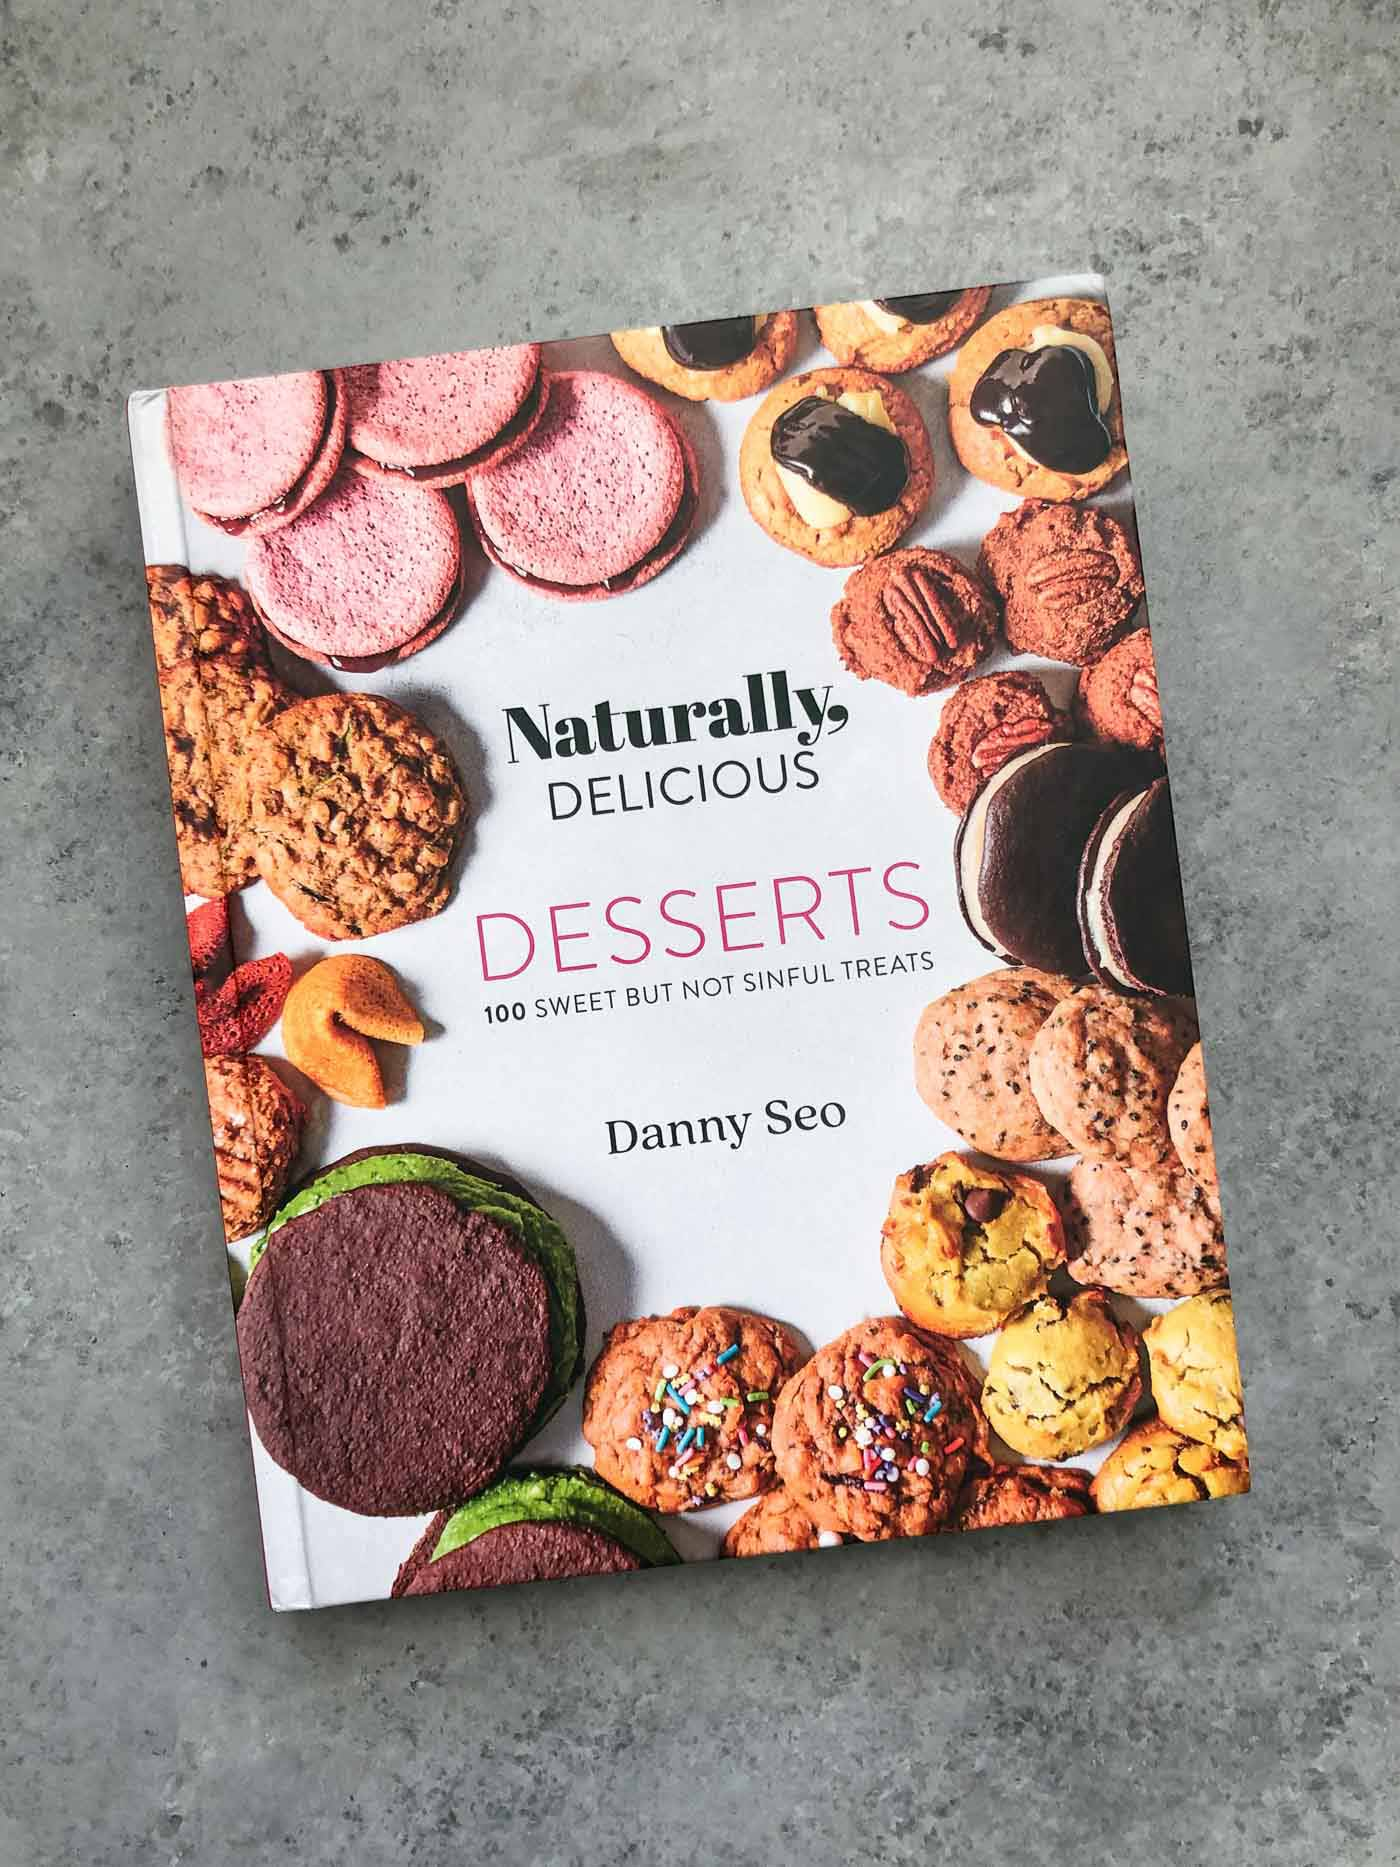 new cookbook: naturally, delicious desserts by danny seo